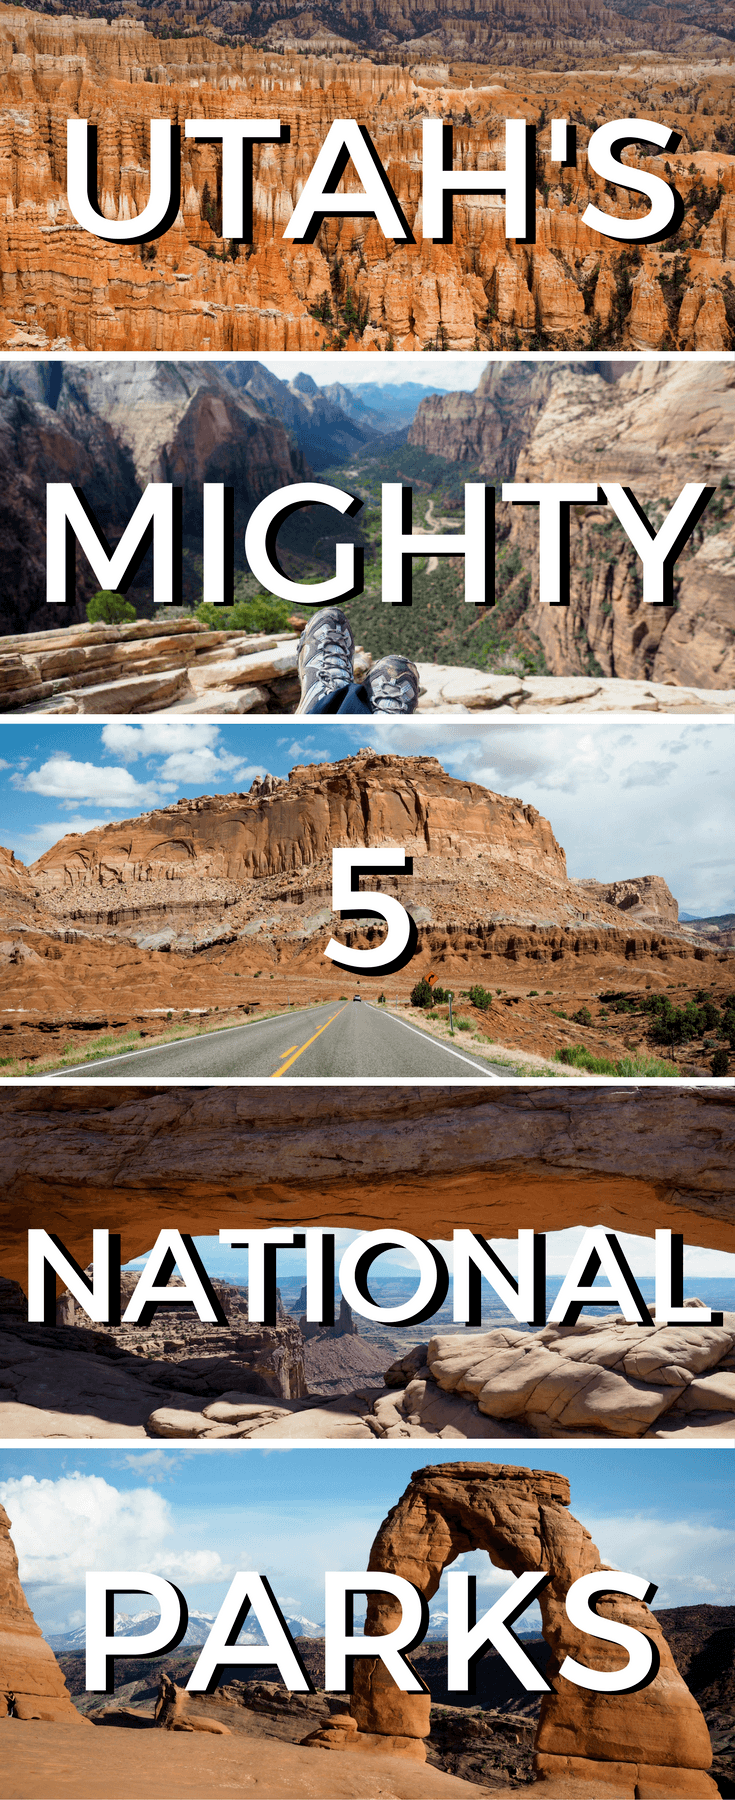 the mighty 5: a travel guide to utah's national parks